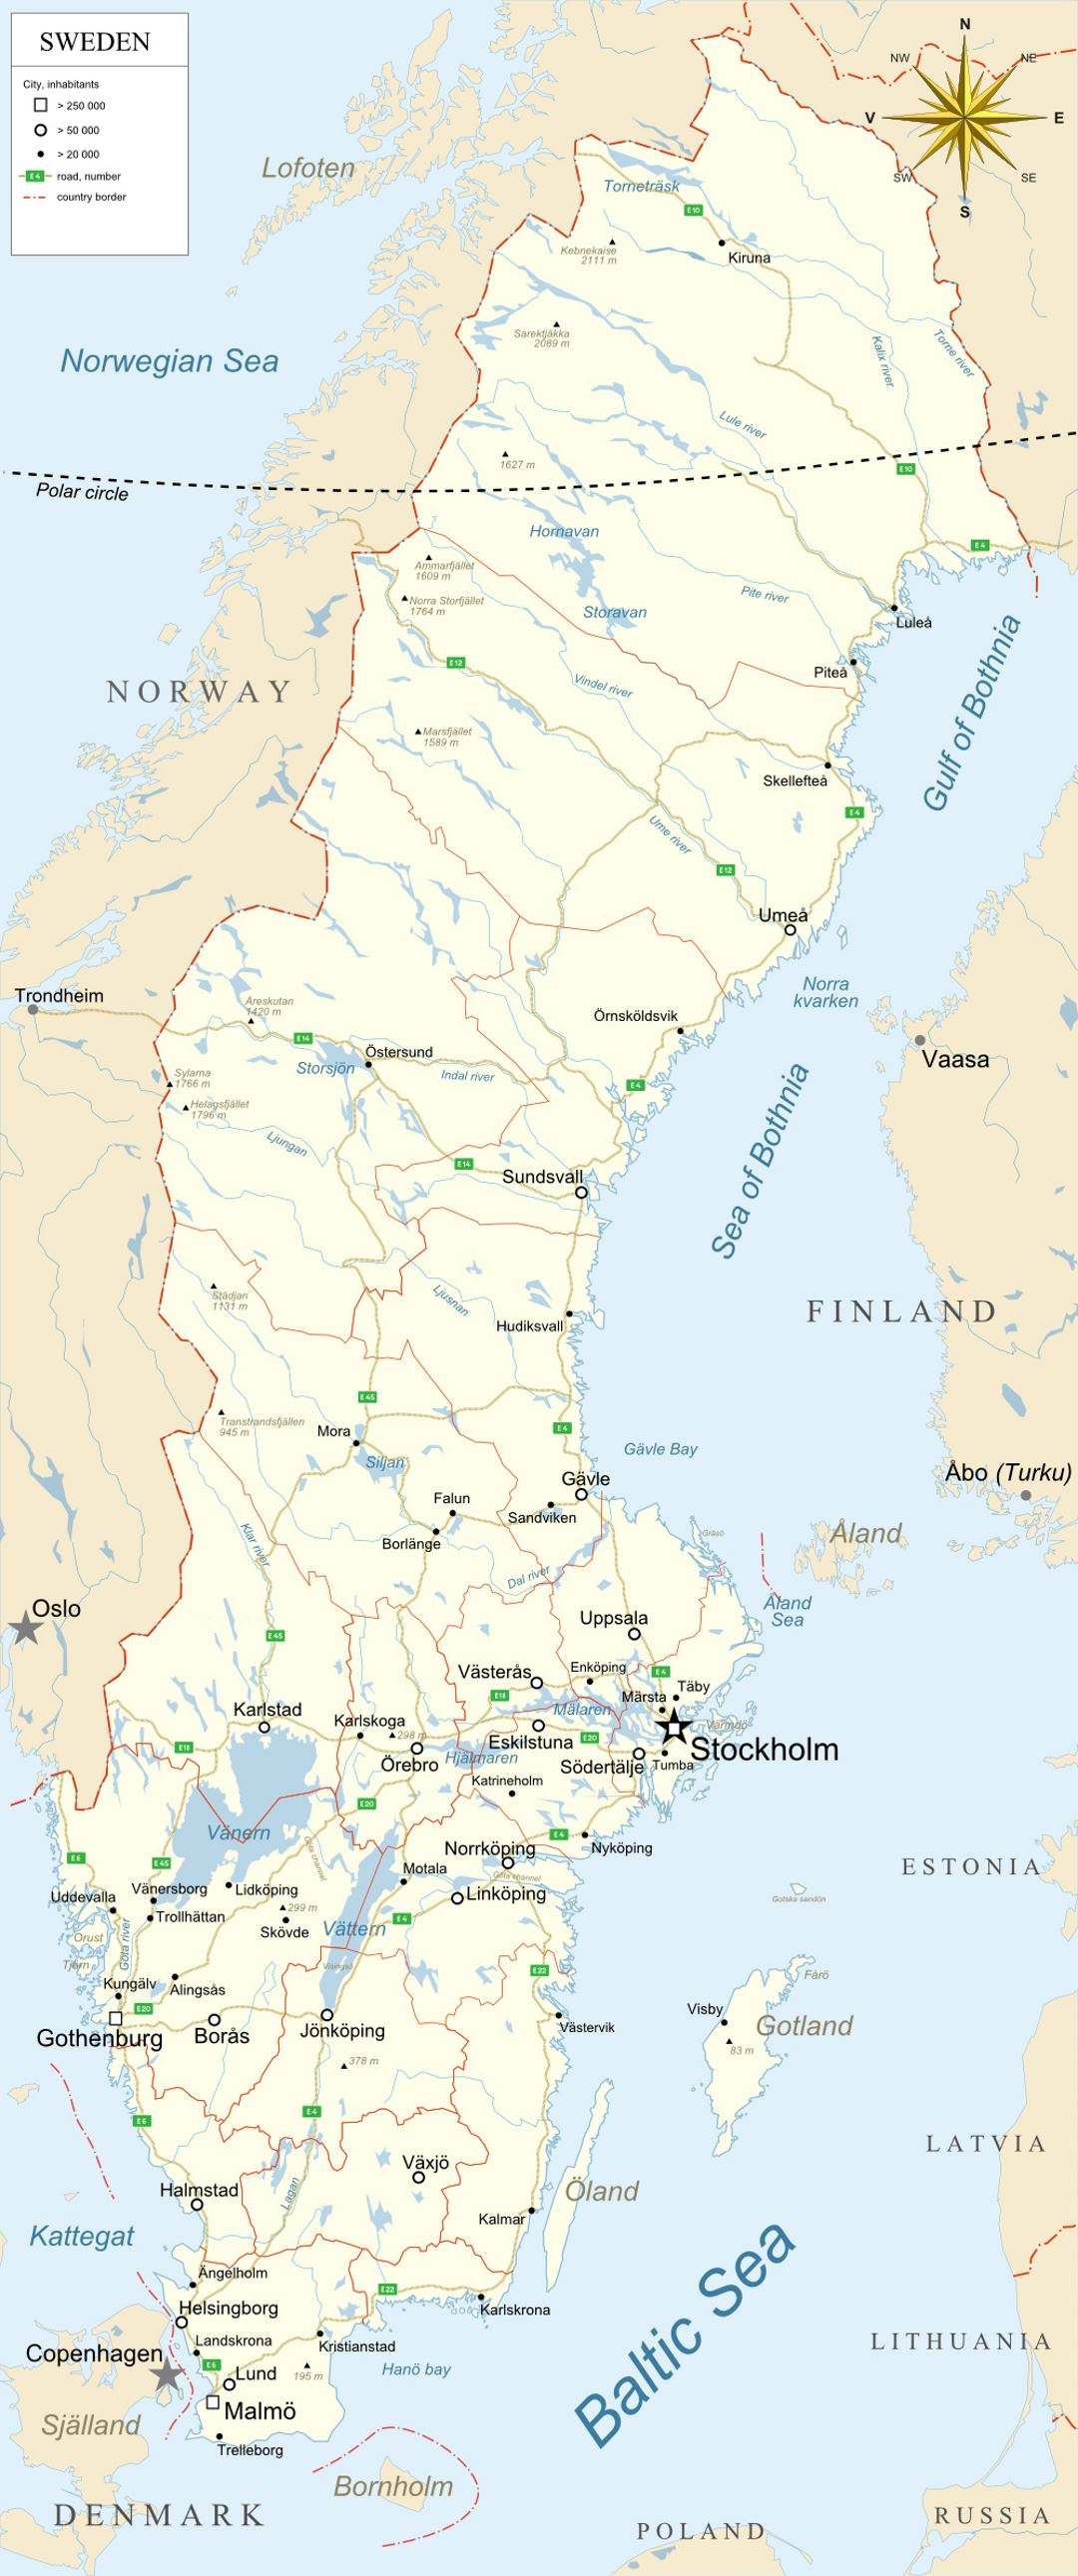 Large map of Sweden with administrative divisions, roads and major cities